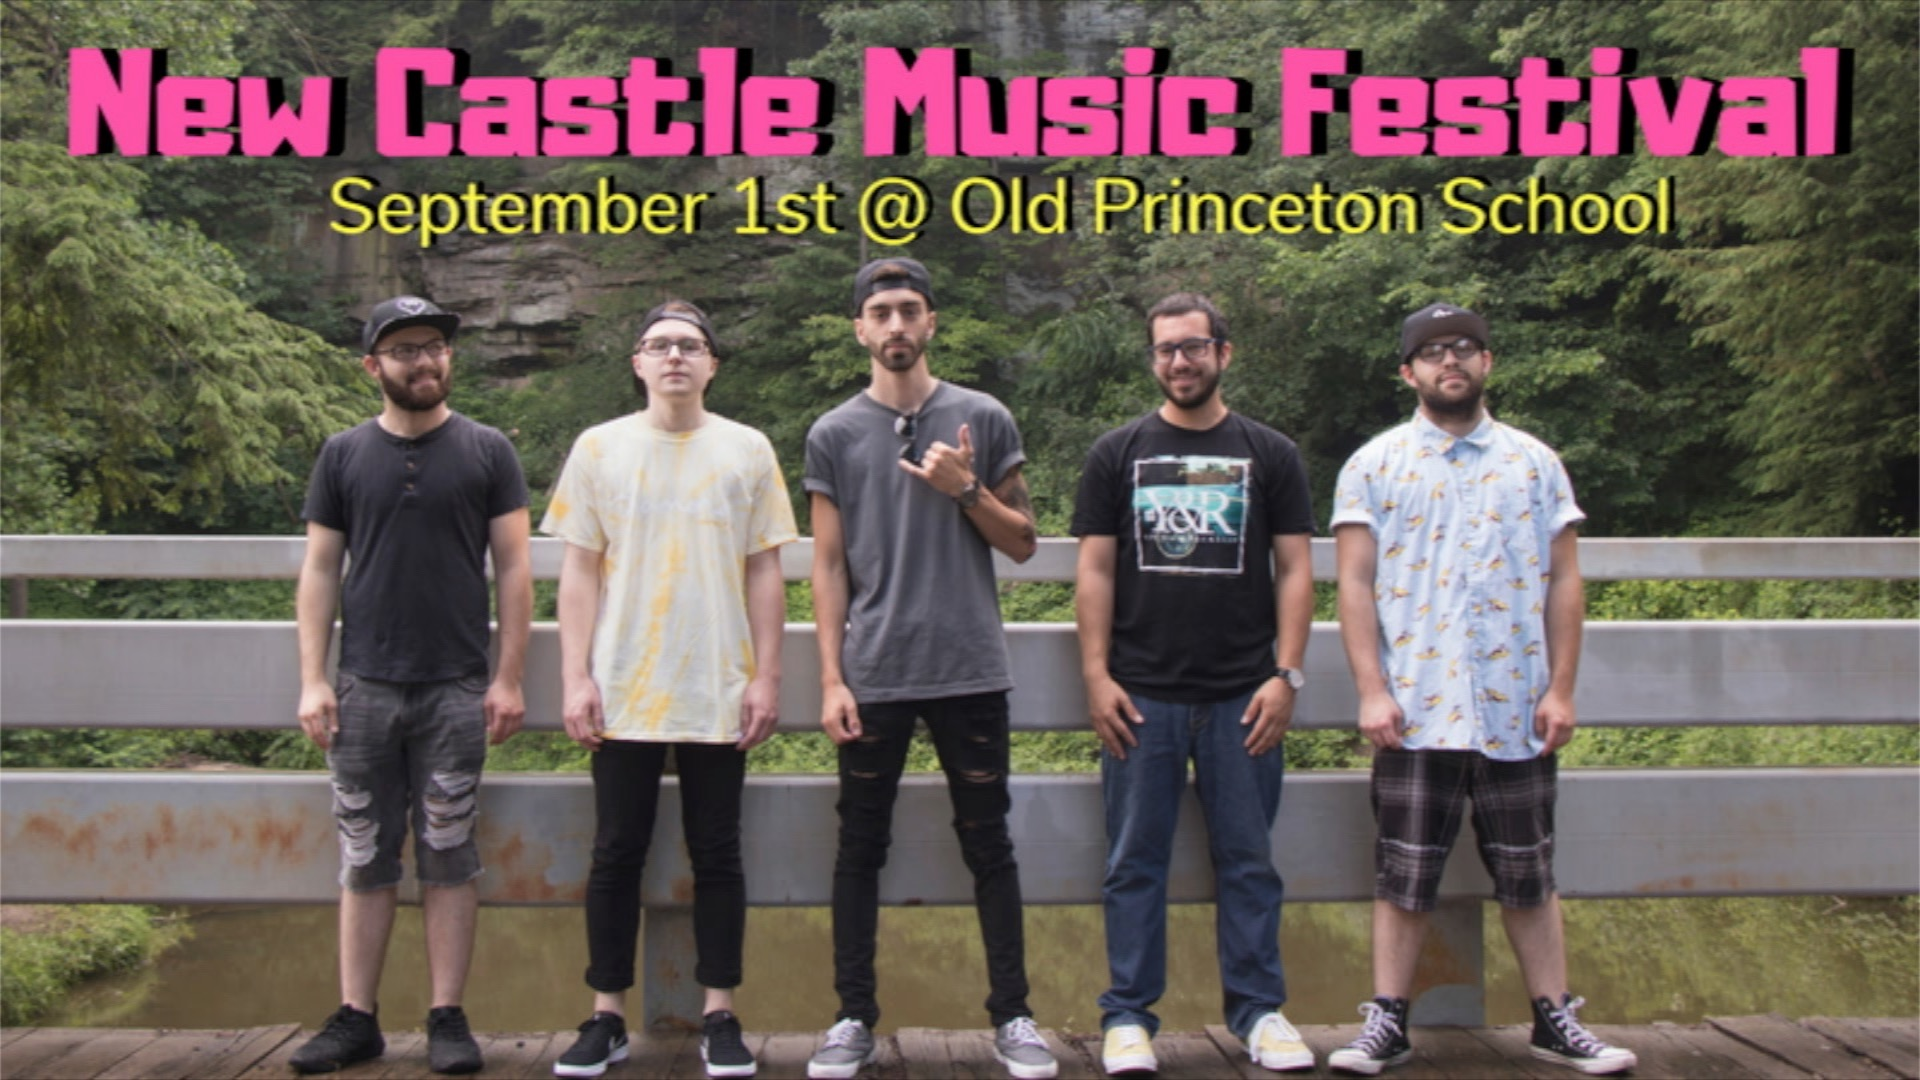 Music Fest Creates 'Good Vibes' in New Castle